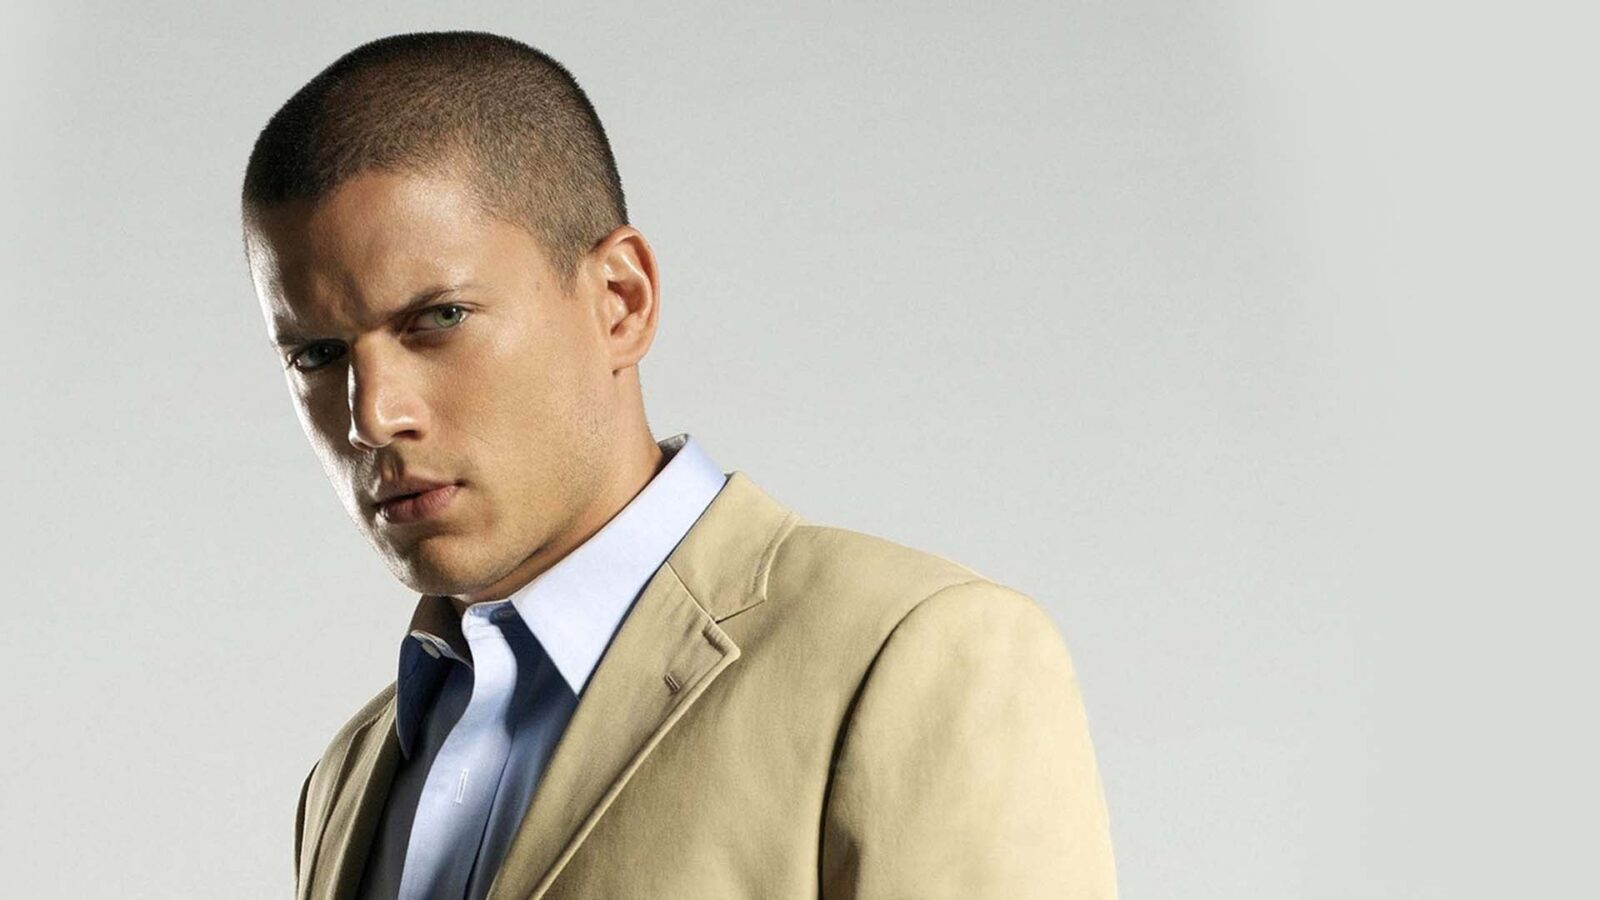 Wentworth Miller backgrounds